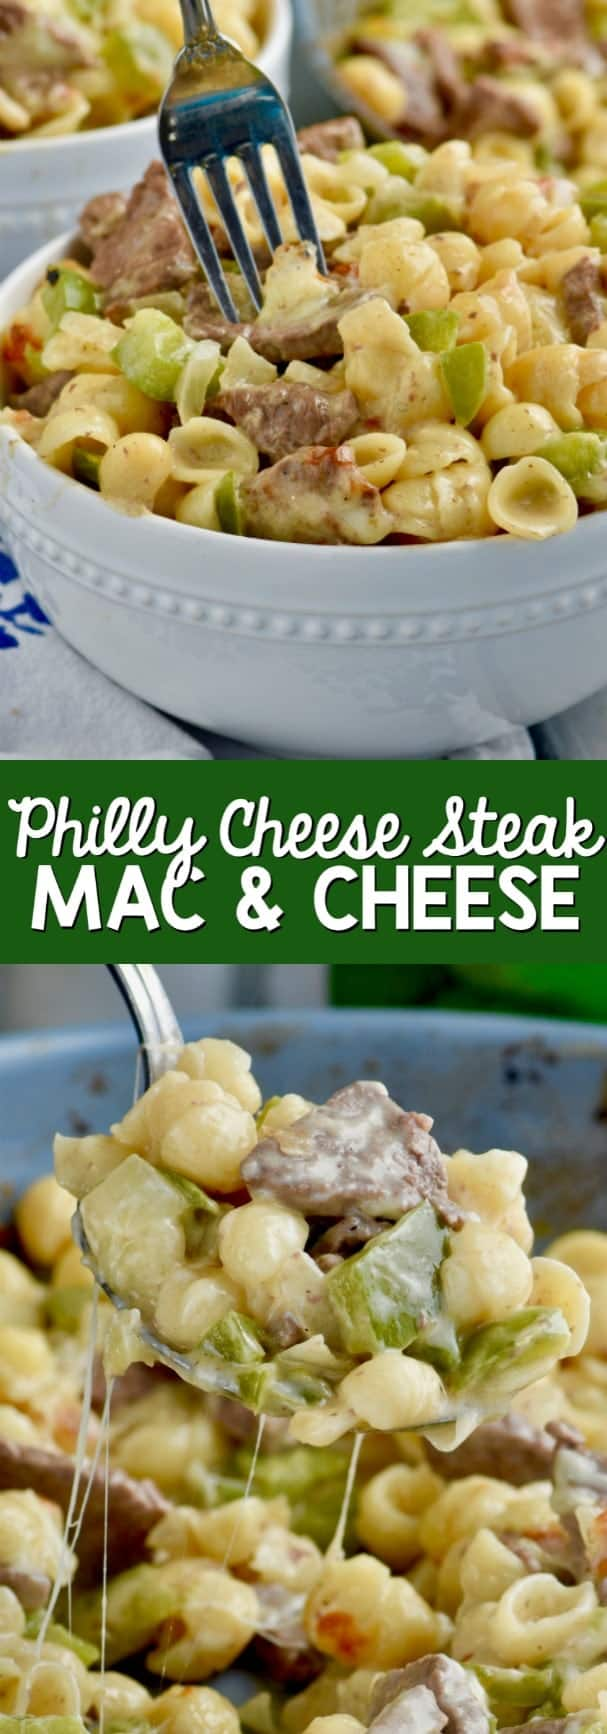 This Philly Cheesesteak Mac and Cheese is only FIVE ingredients! And its a dinner you can feel great about giving to your family!